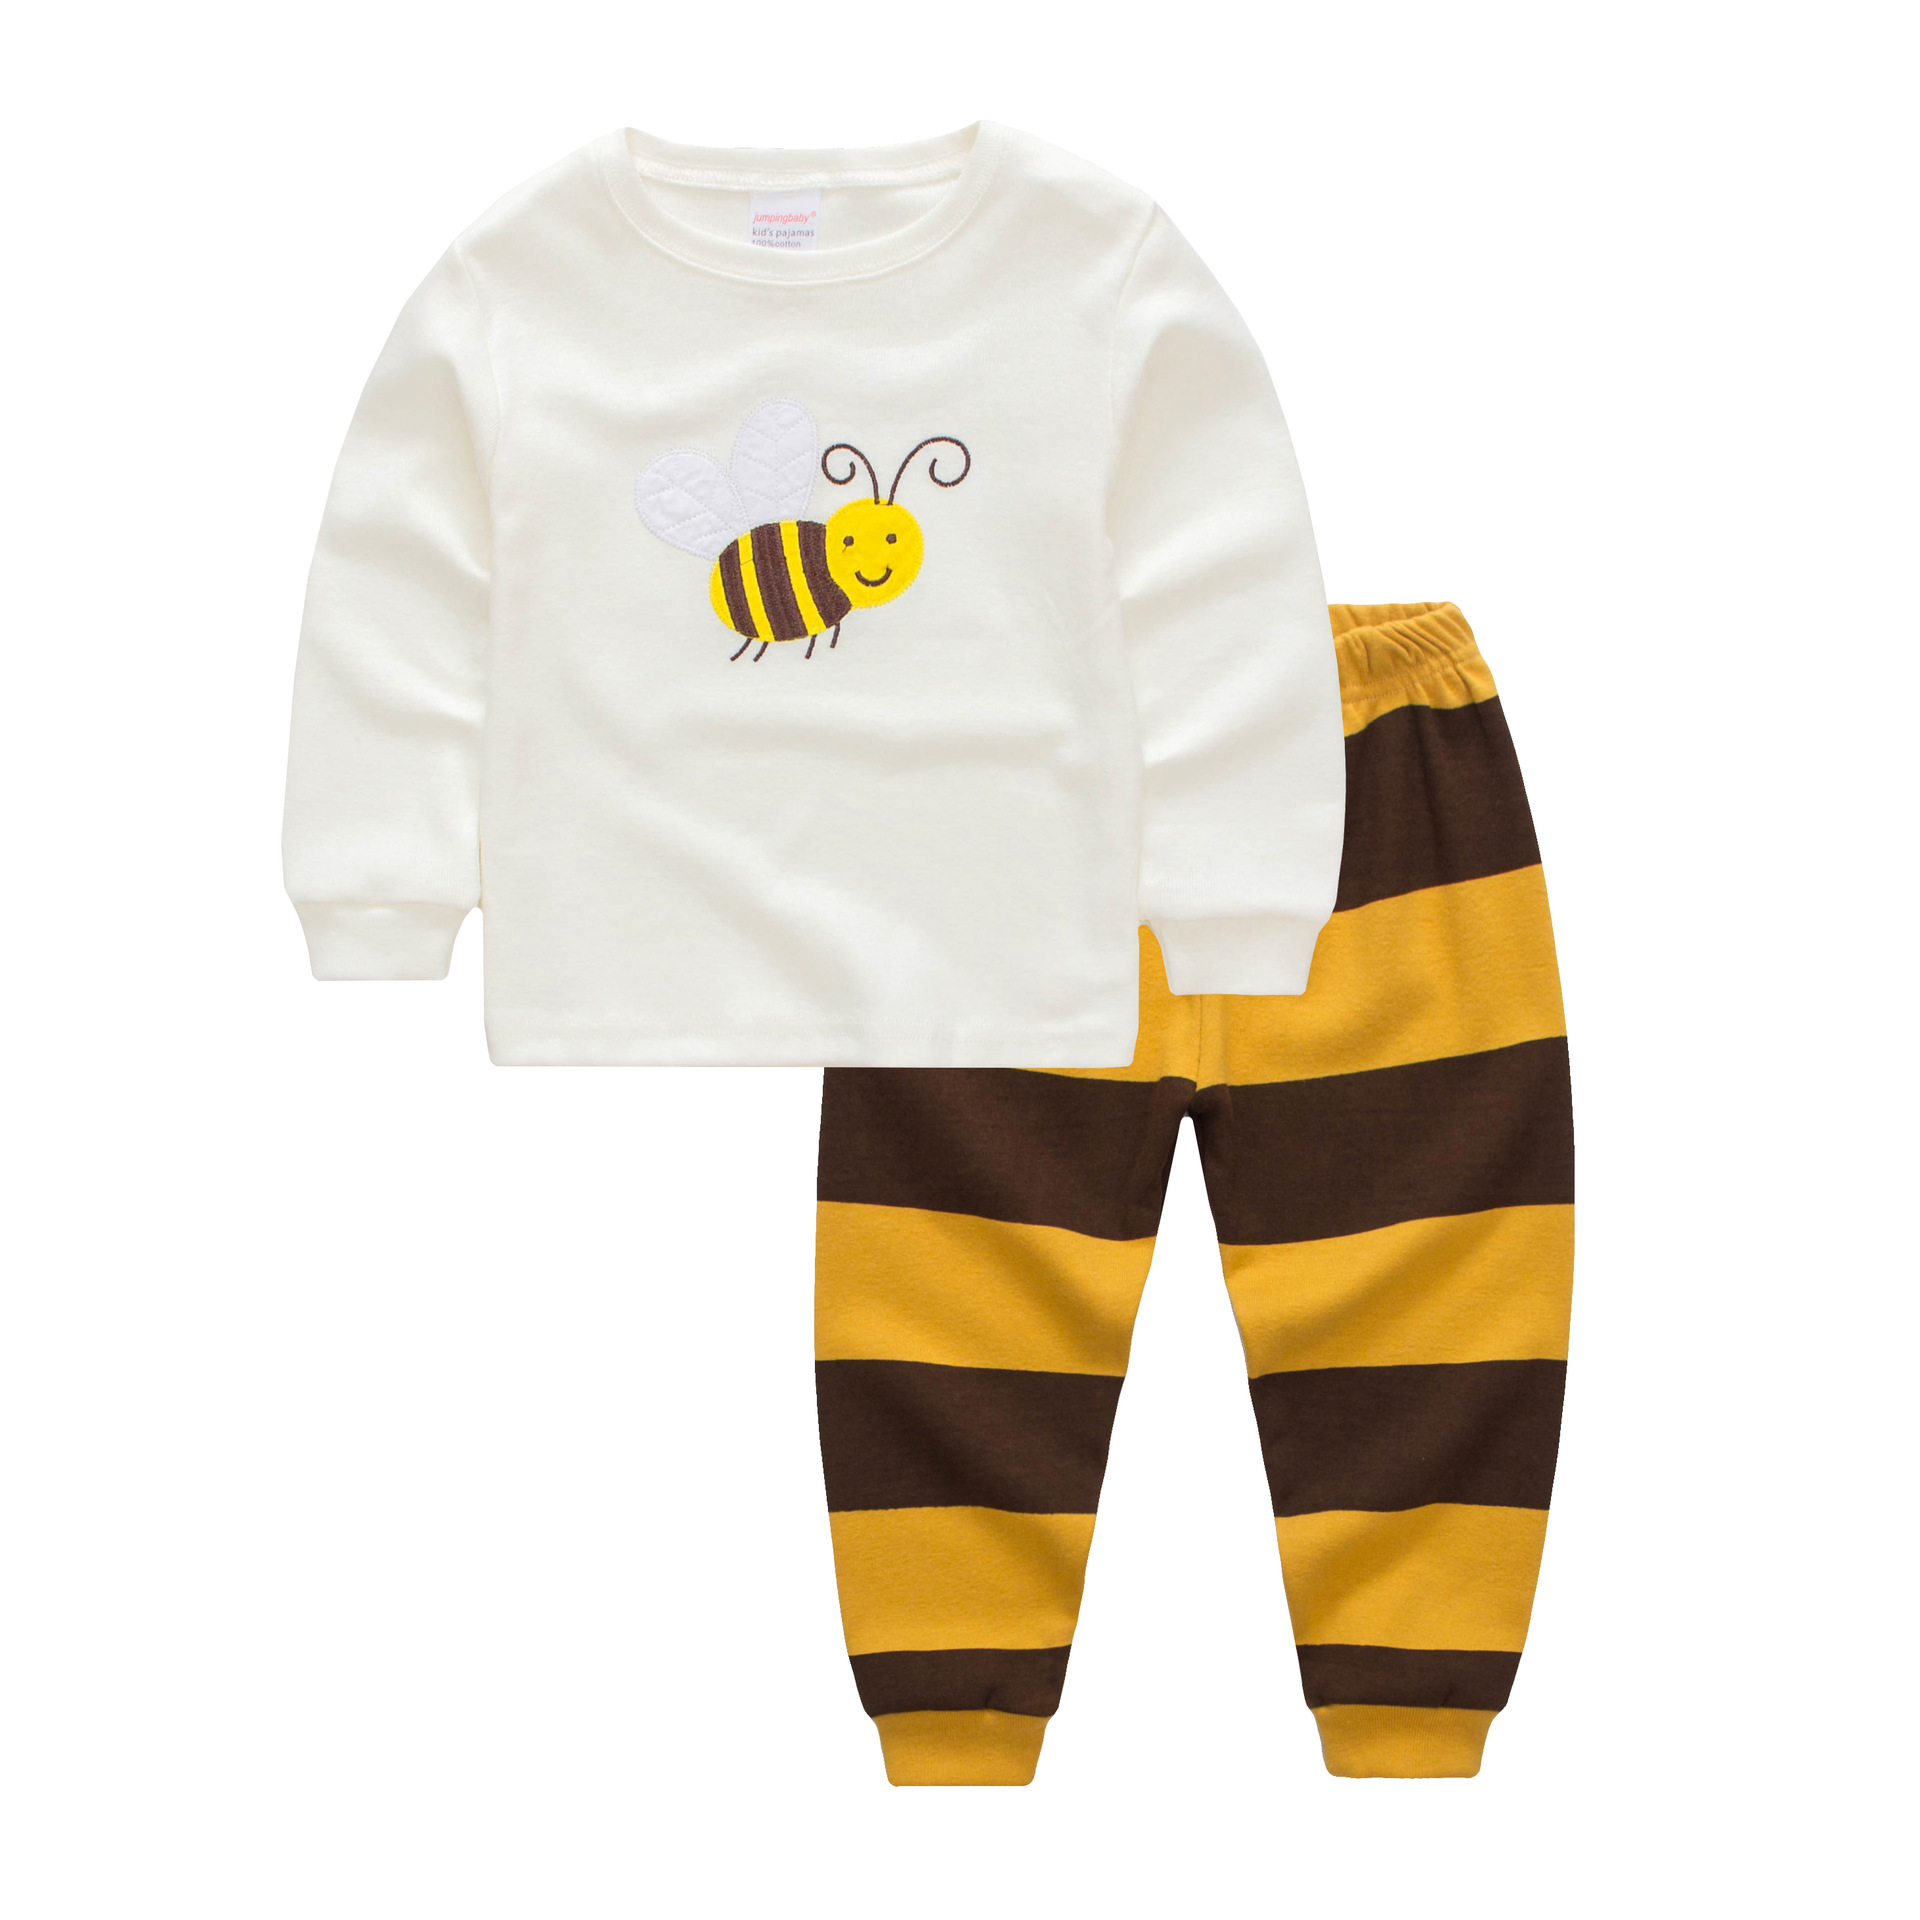 Kids Yellow Bee Stripes Pajamas Sleepwear Set Long-sleeve Cotton Pjs